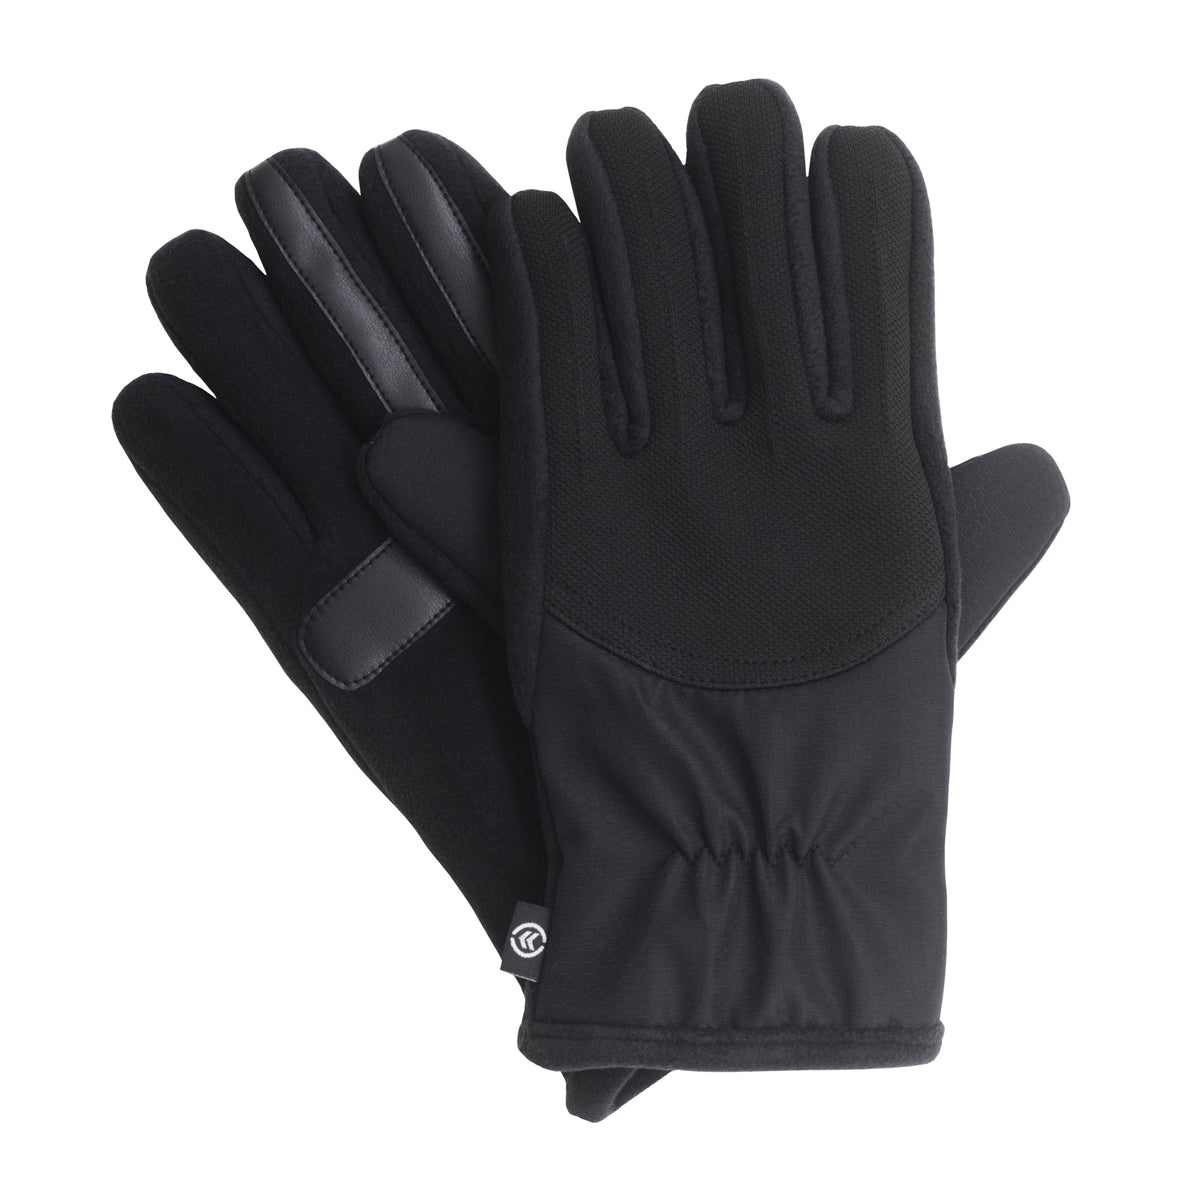 Isotoner Men's SmarTouch Tech Stretch Nylon Combo Gloves